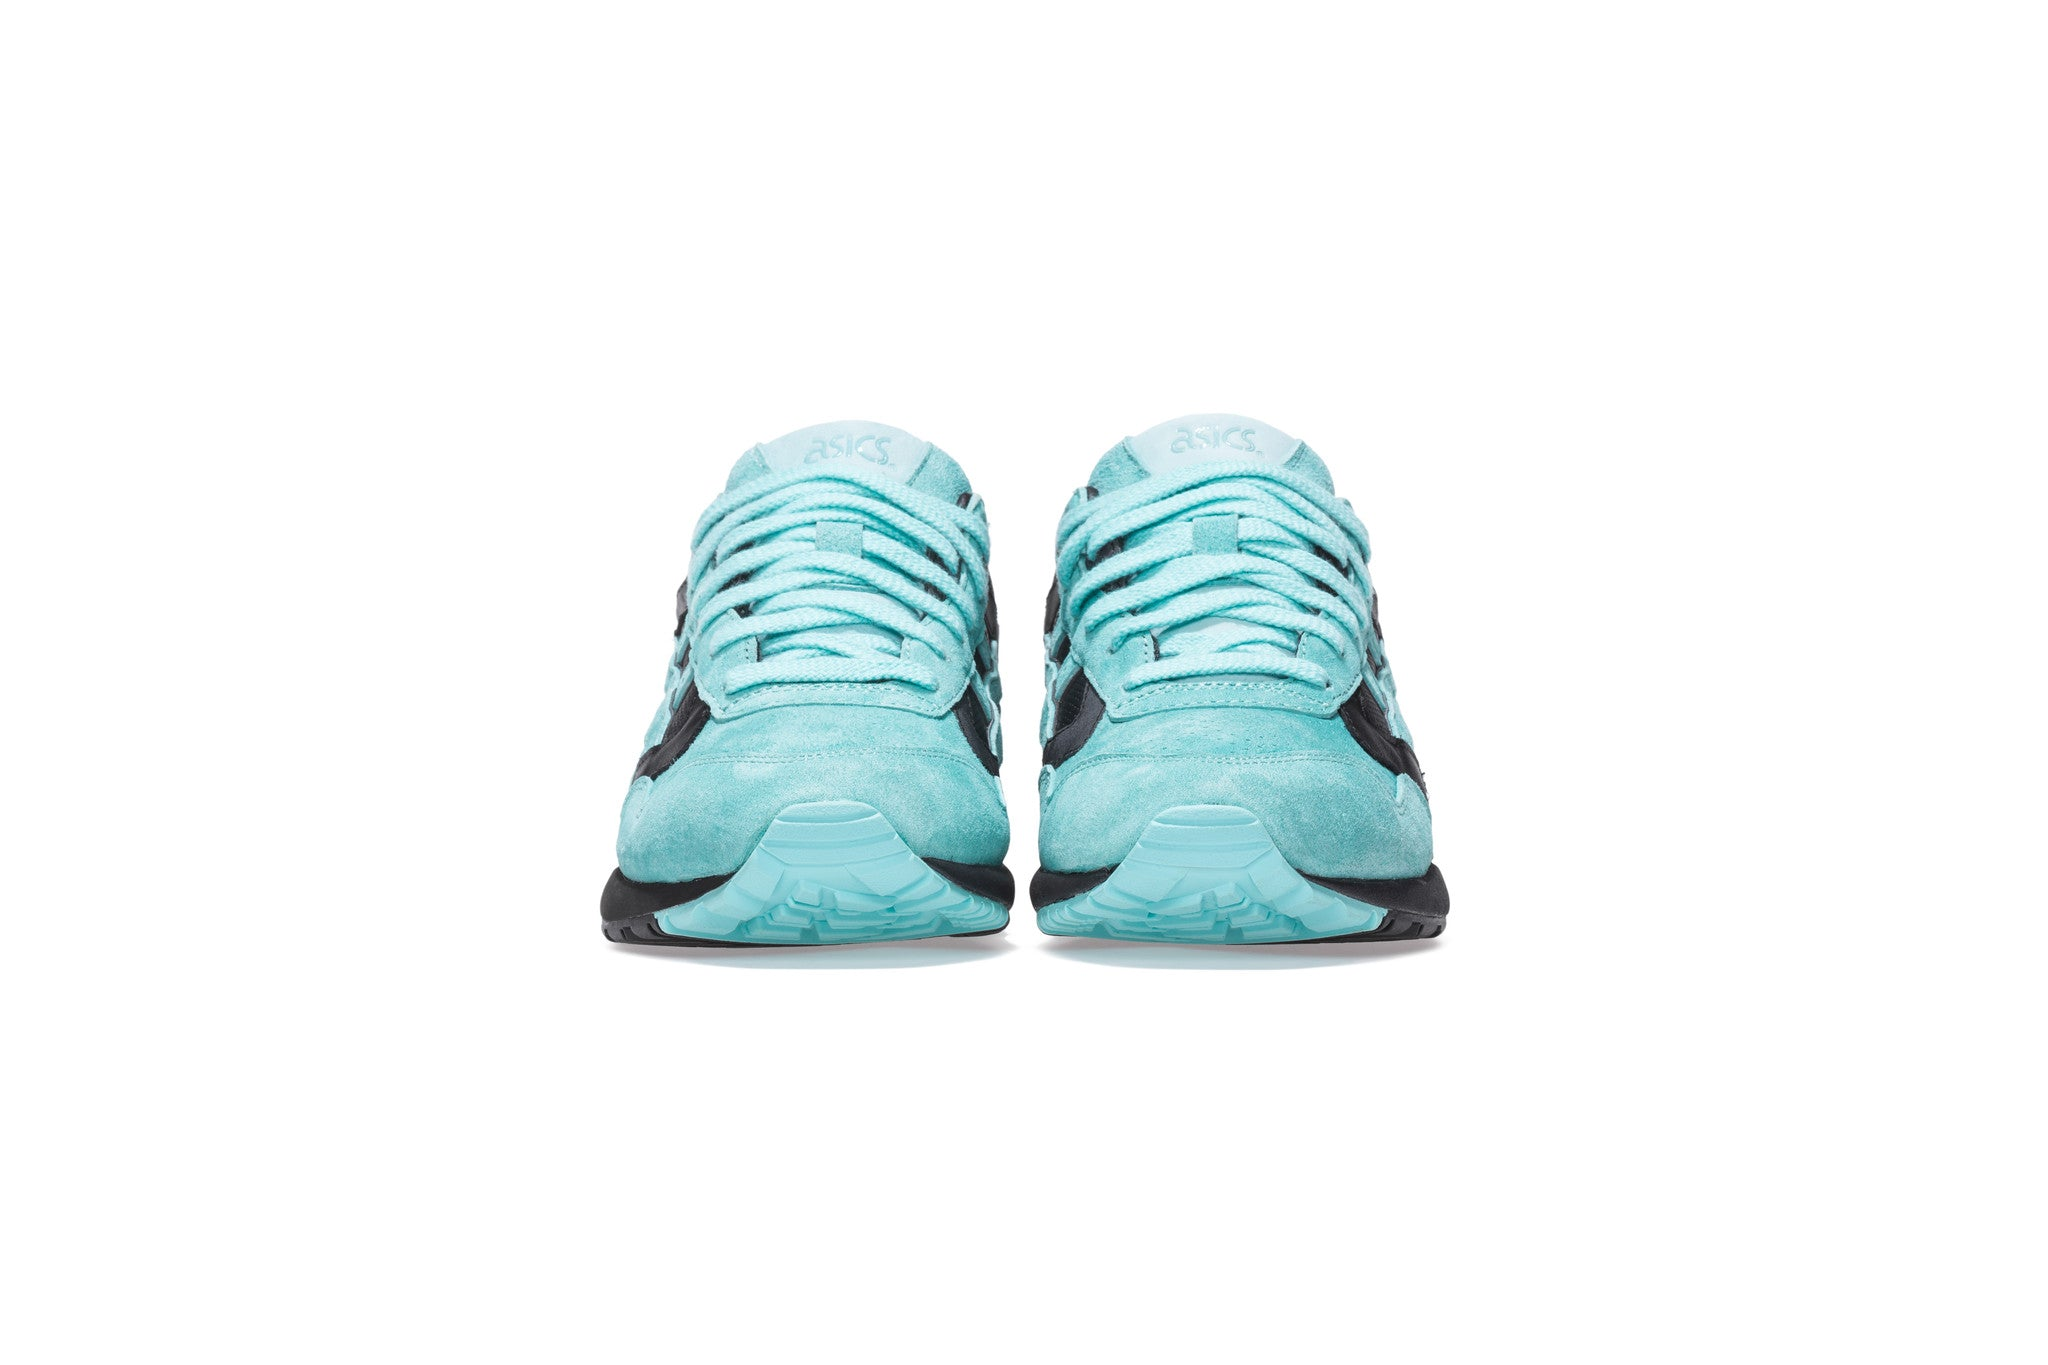 Ronnie Fieg x Diamond Supply Co. x Asics Gel Saga